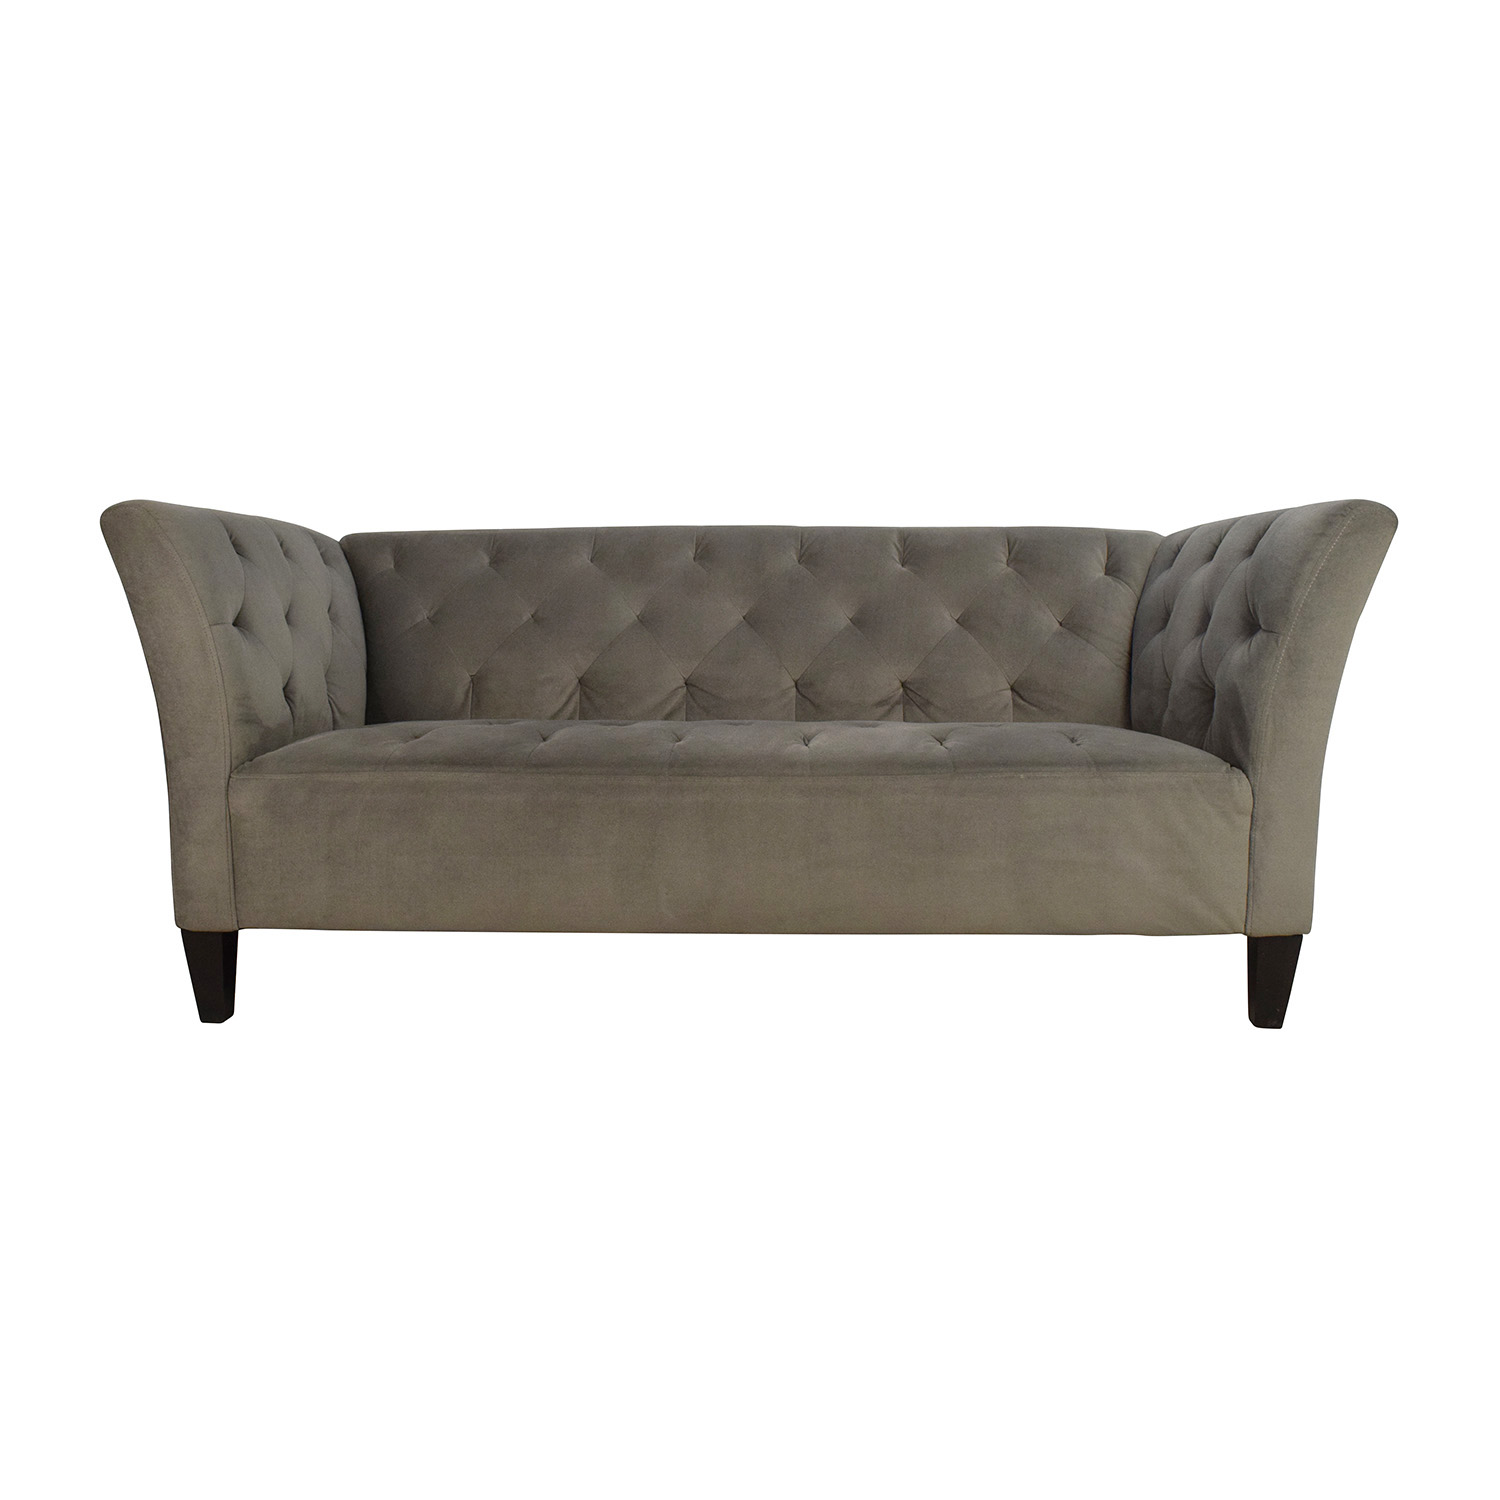 47 Off Macy 39 S Macy 39 S Lizbeth Gray Button Tufted Sofa Sofas